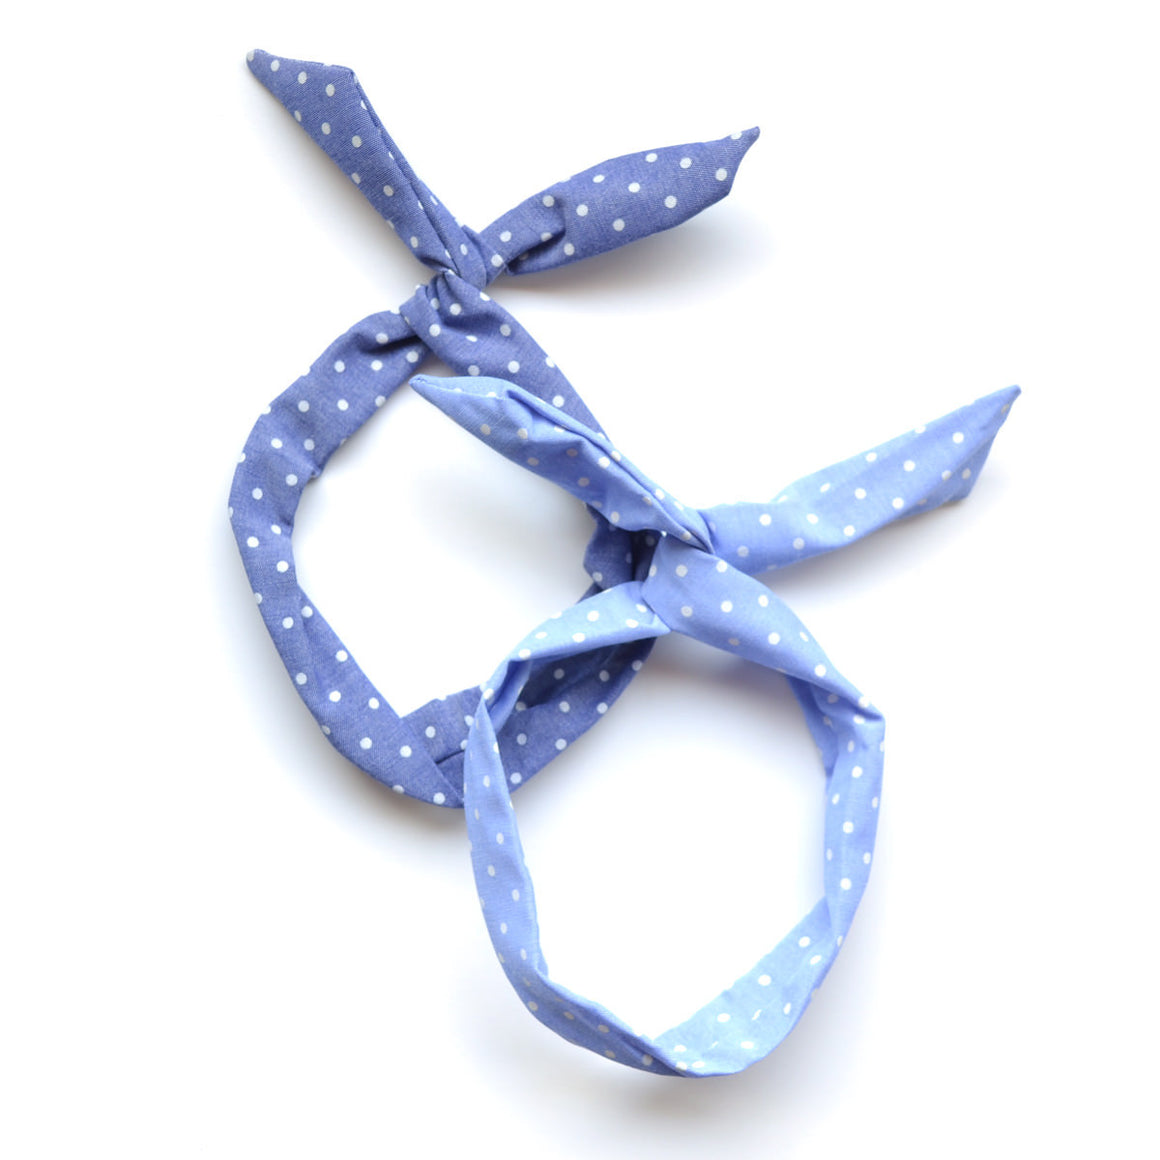 denim polkadot twist headband // hello shiso hair accessories for girls